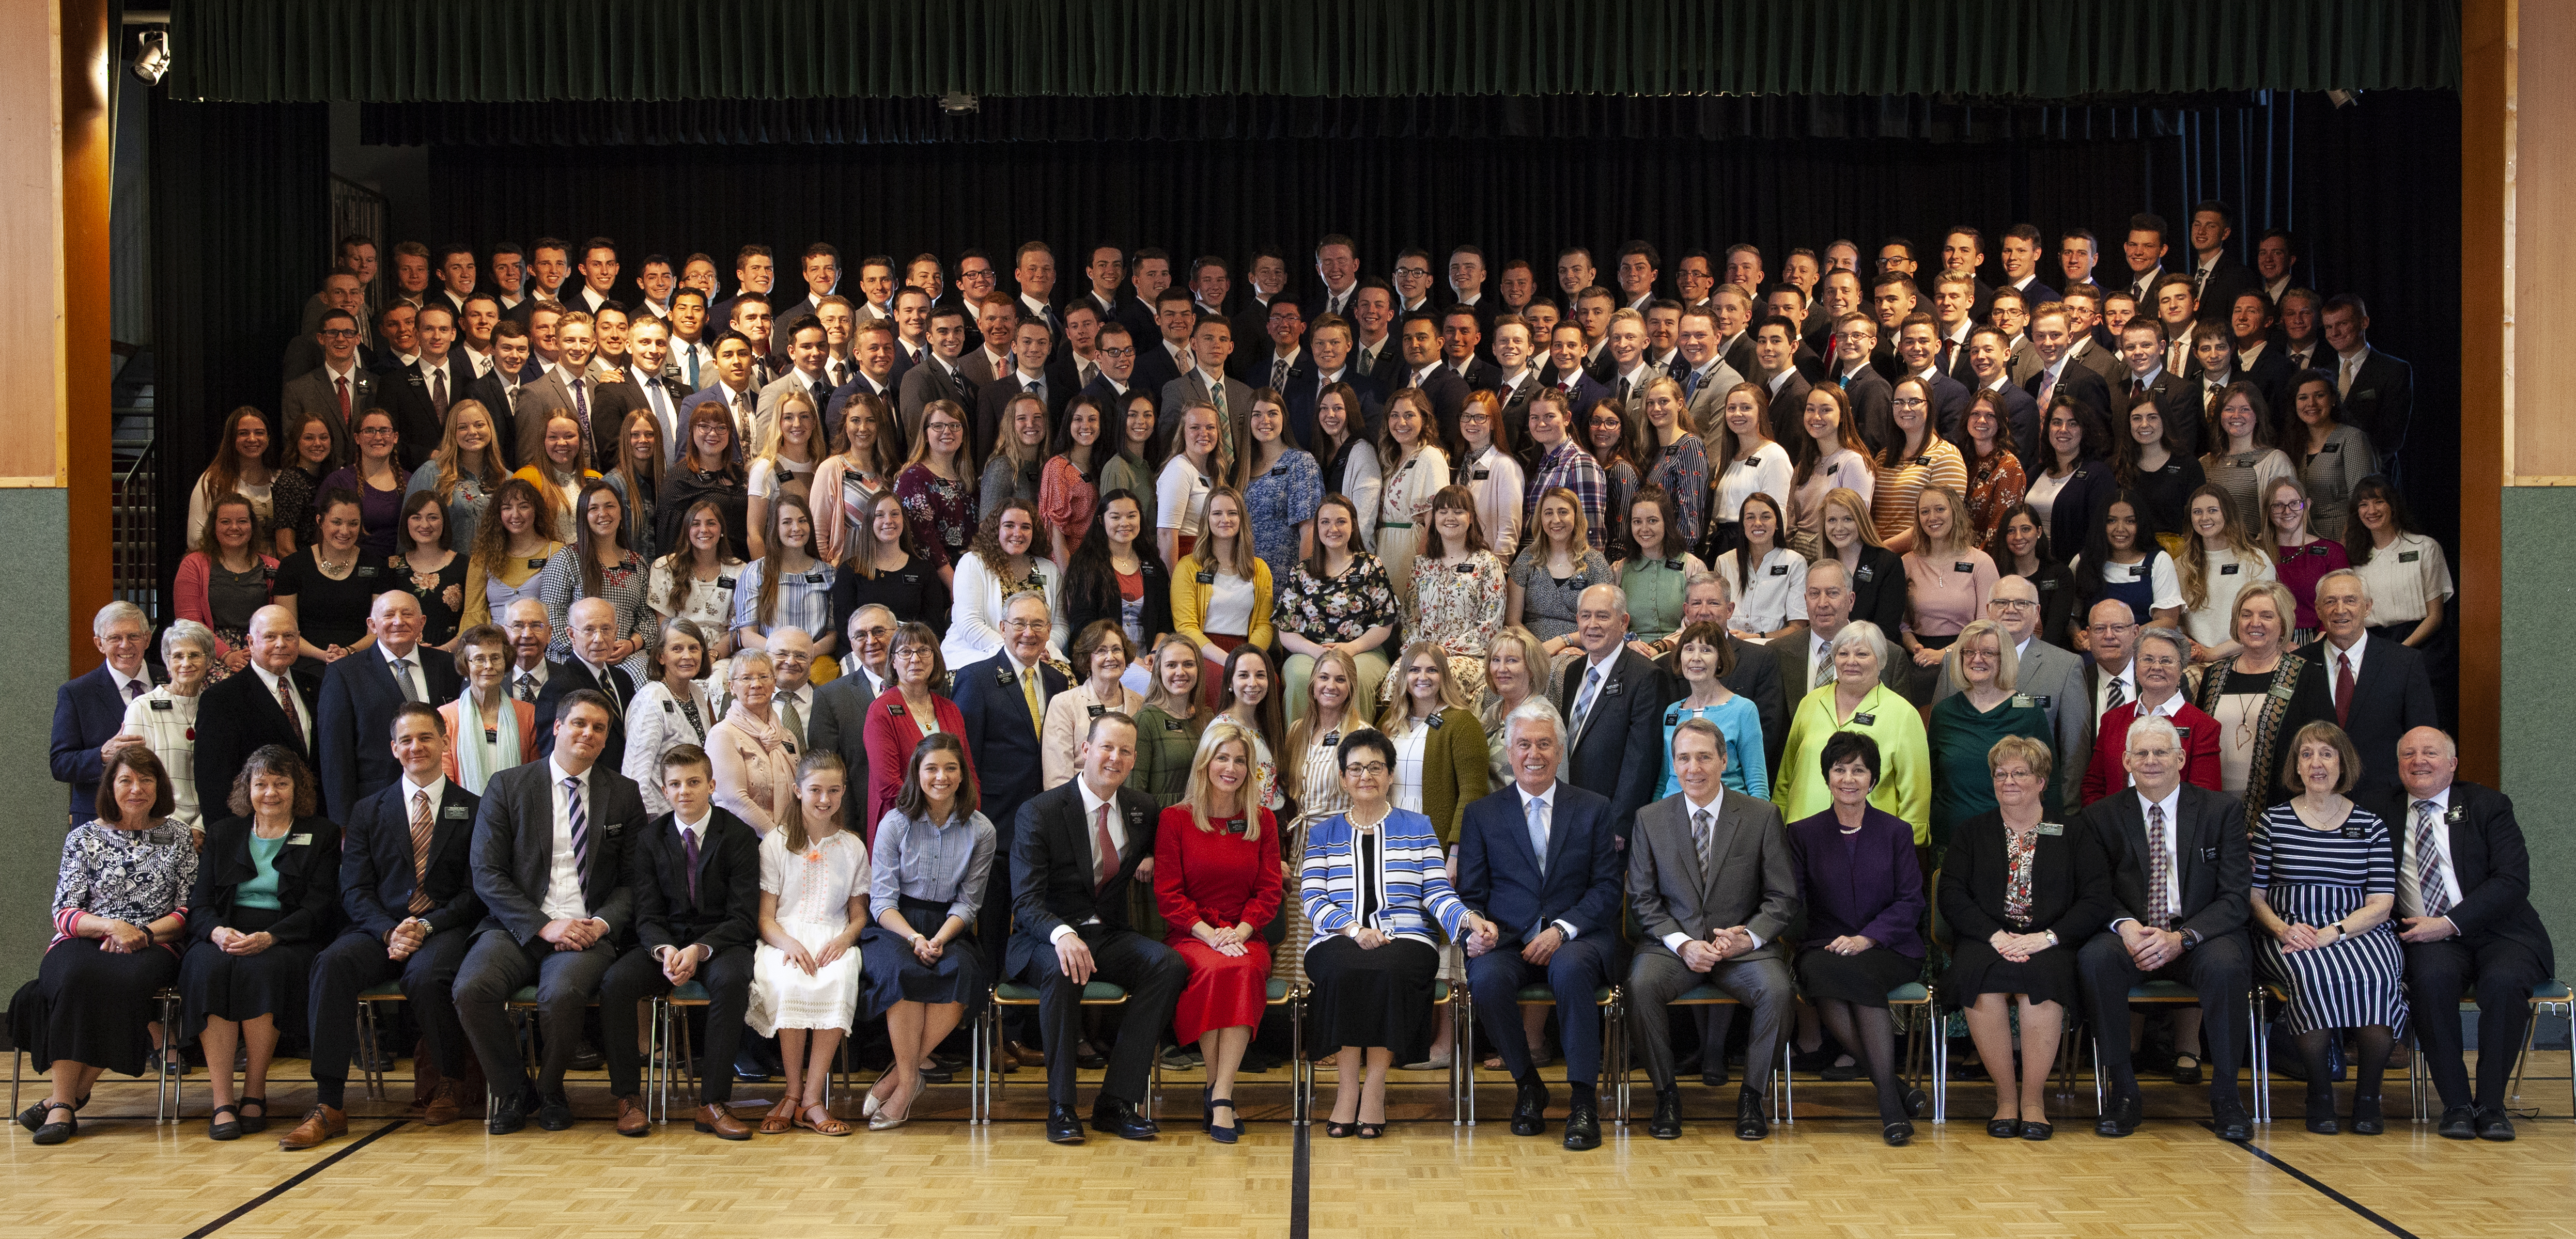 Elder Dieter F. Uchtdorf and Sister Harriet Uchtdorf pose for group photos with the leaders and missionaries of the Germany Frankfurt Mission following a mission conference in Frankfurt on April 18, 2019.